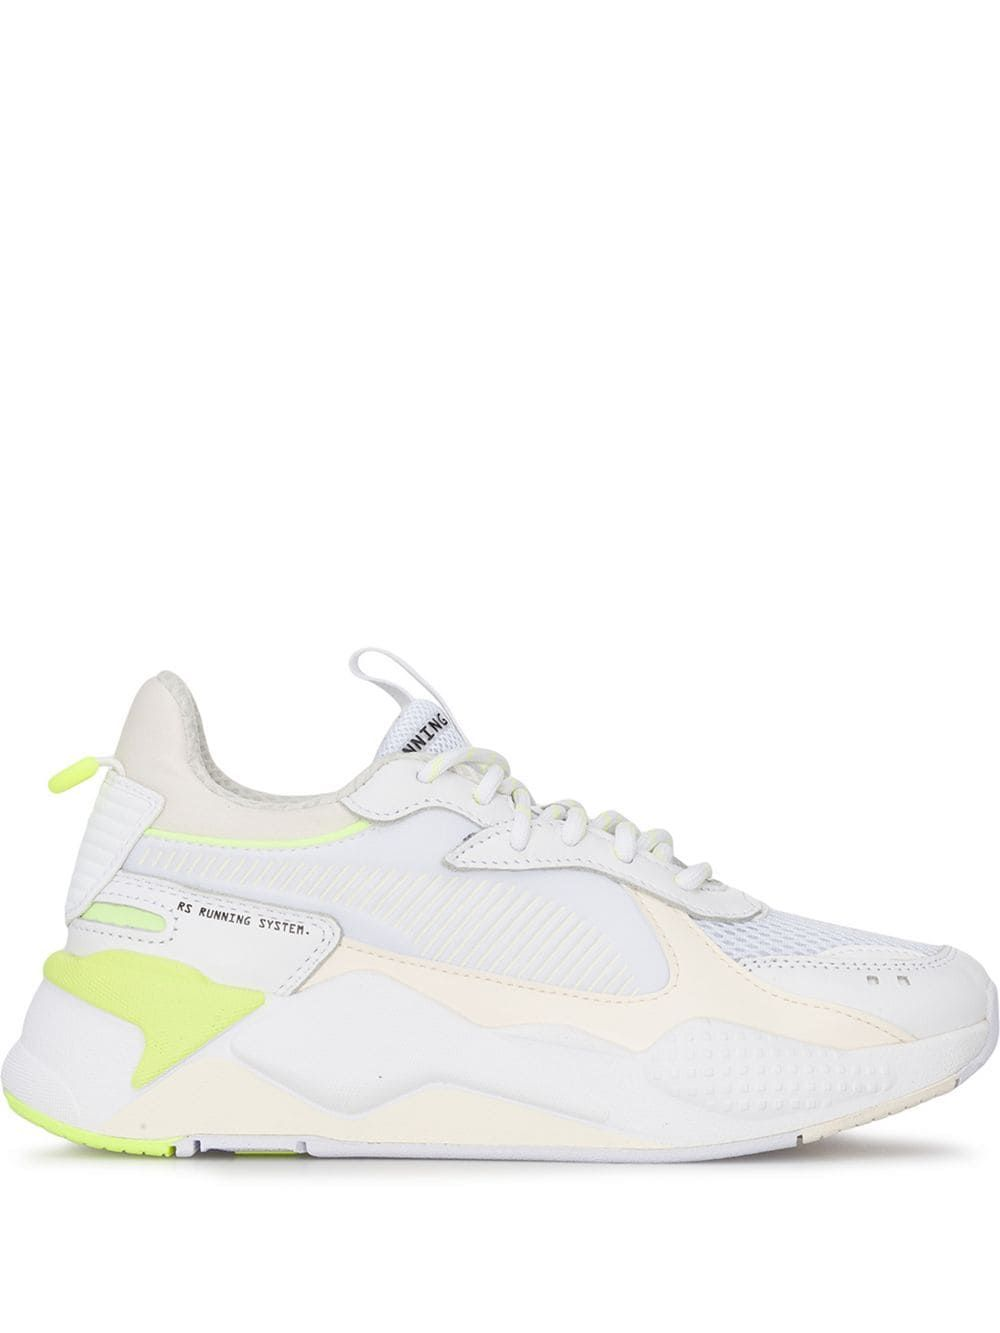 RS X Tracks sneakers in 2020 | Sneakers, Puma outfit, Comfy